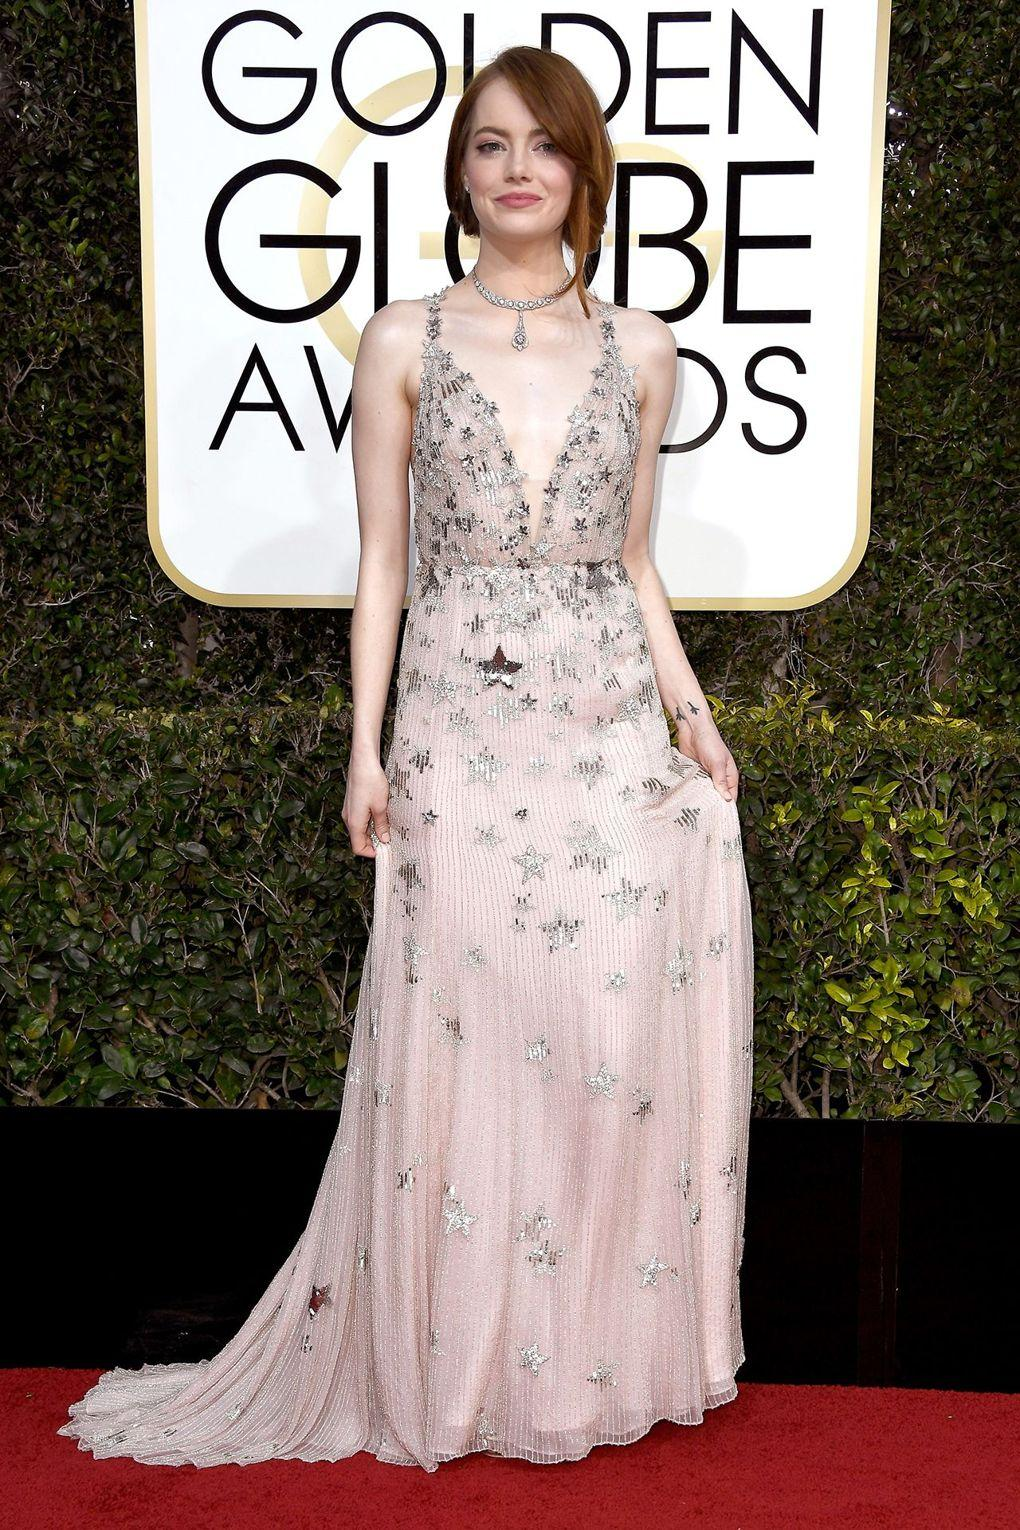 The Best Dressed from Golden Globe Awards - Emma Stone